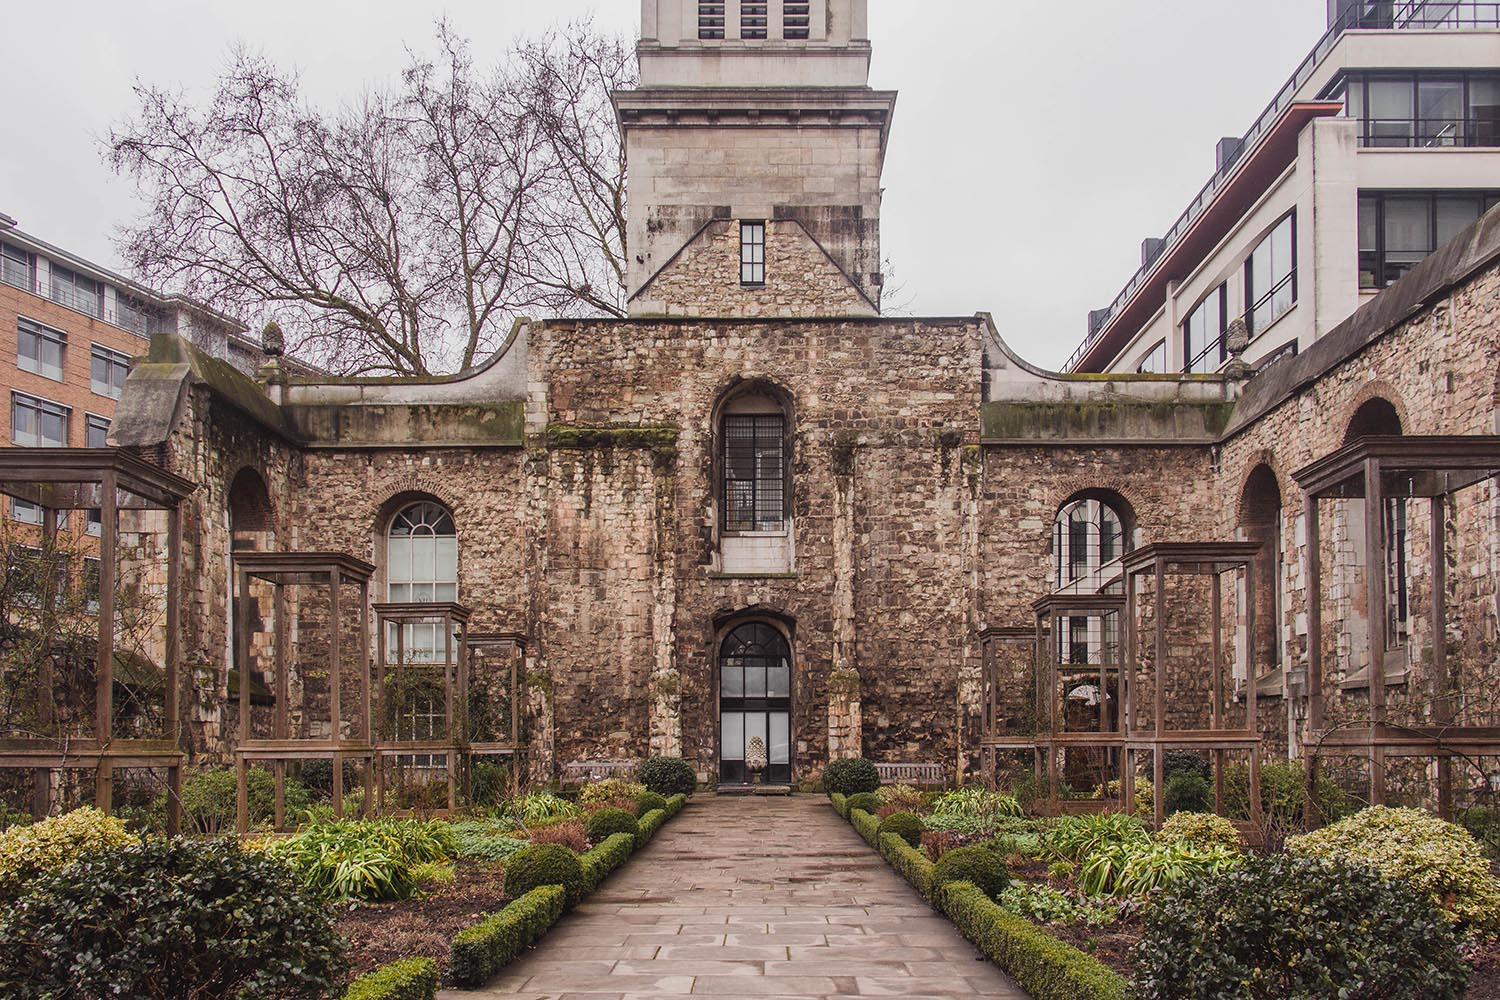 london-walks-Christchurch-Greyfriars-Church-Garden.jpg